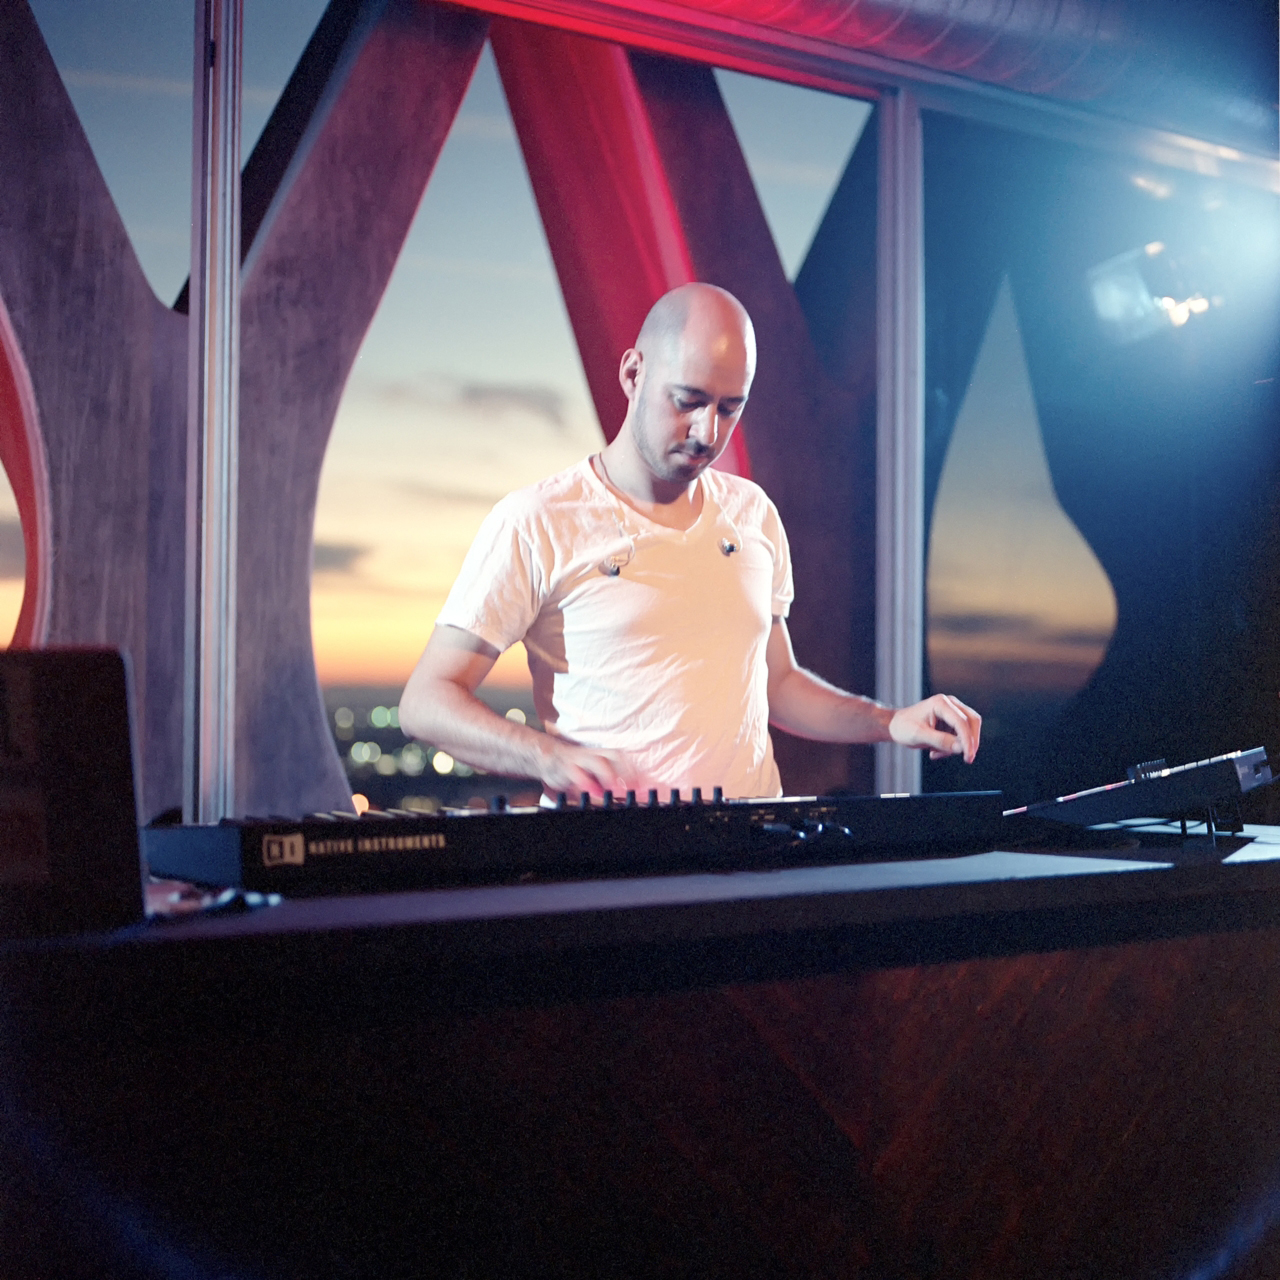 Mark de Clive-Lowe practices with Native Instruments Maschine Studio as the sun sets